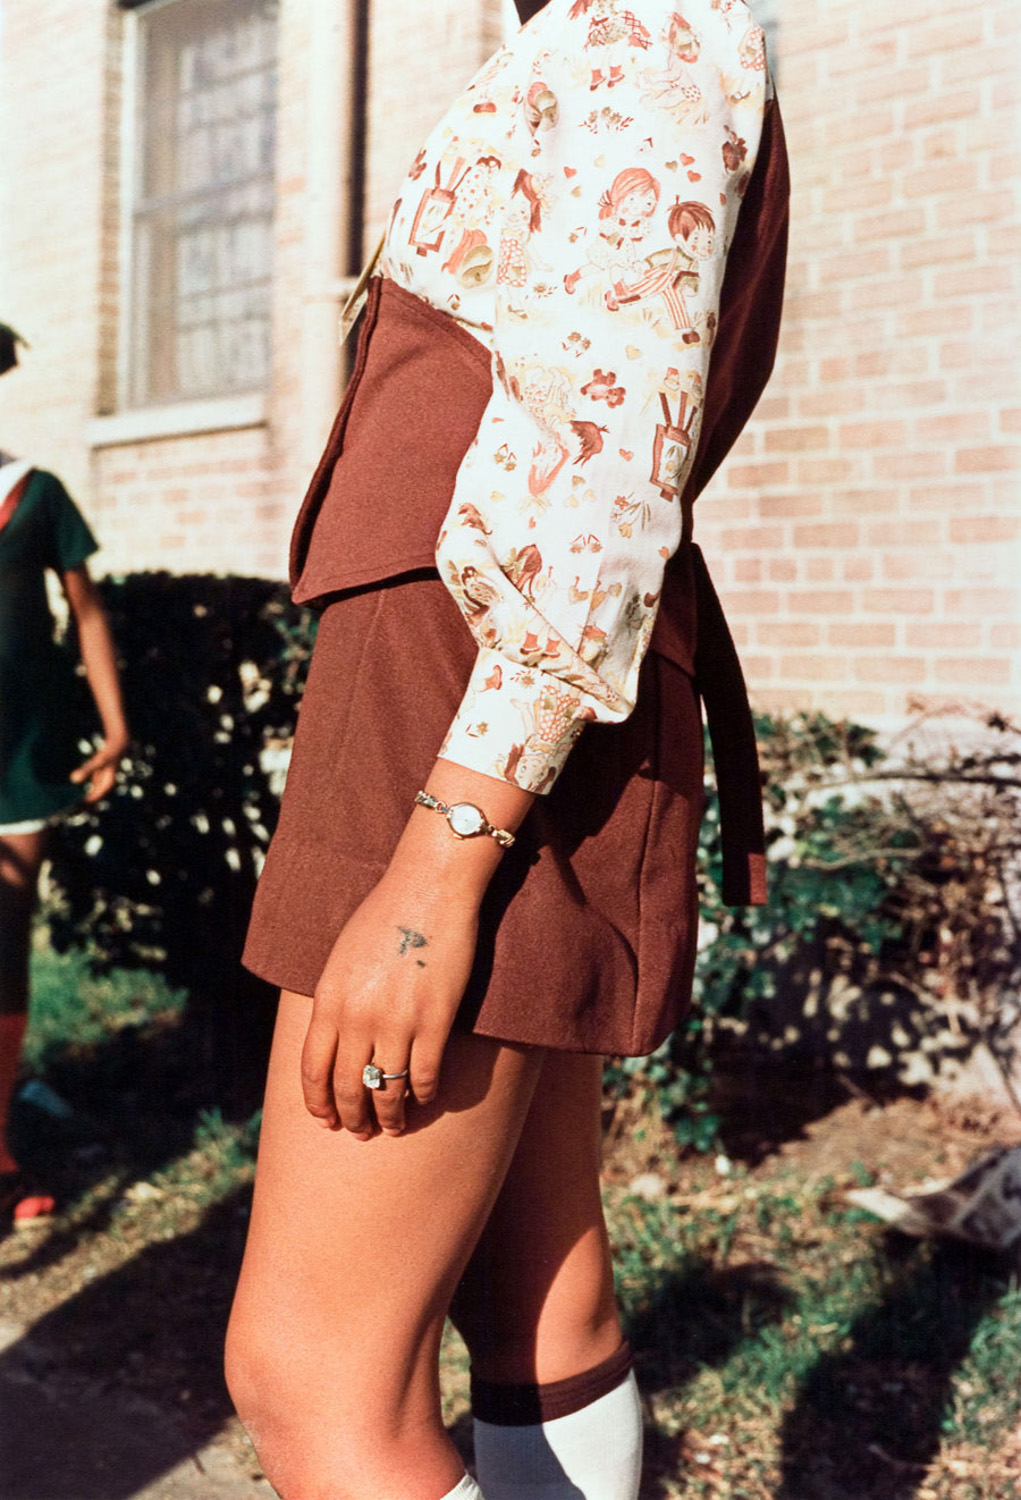 william-eggleston-untitled-n-d-girl-with-ring-2.jpg